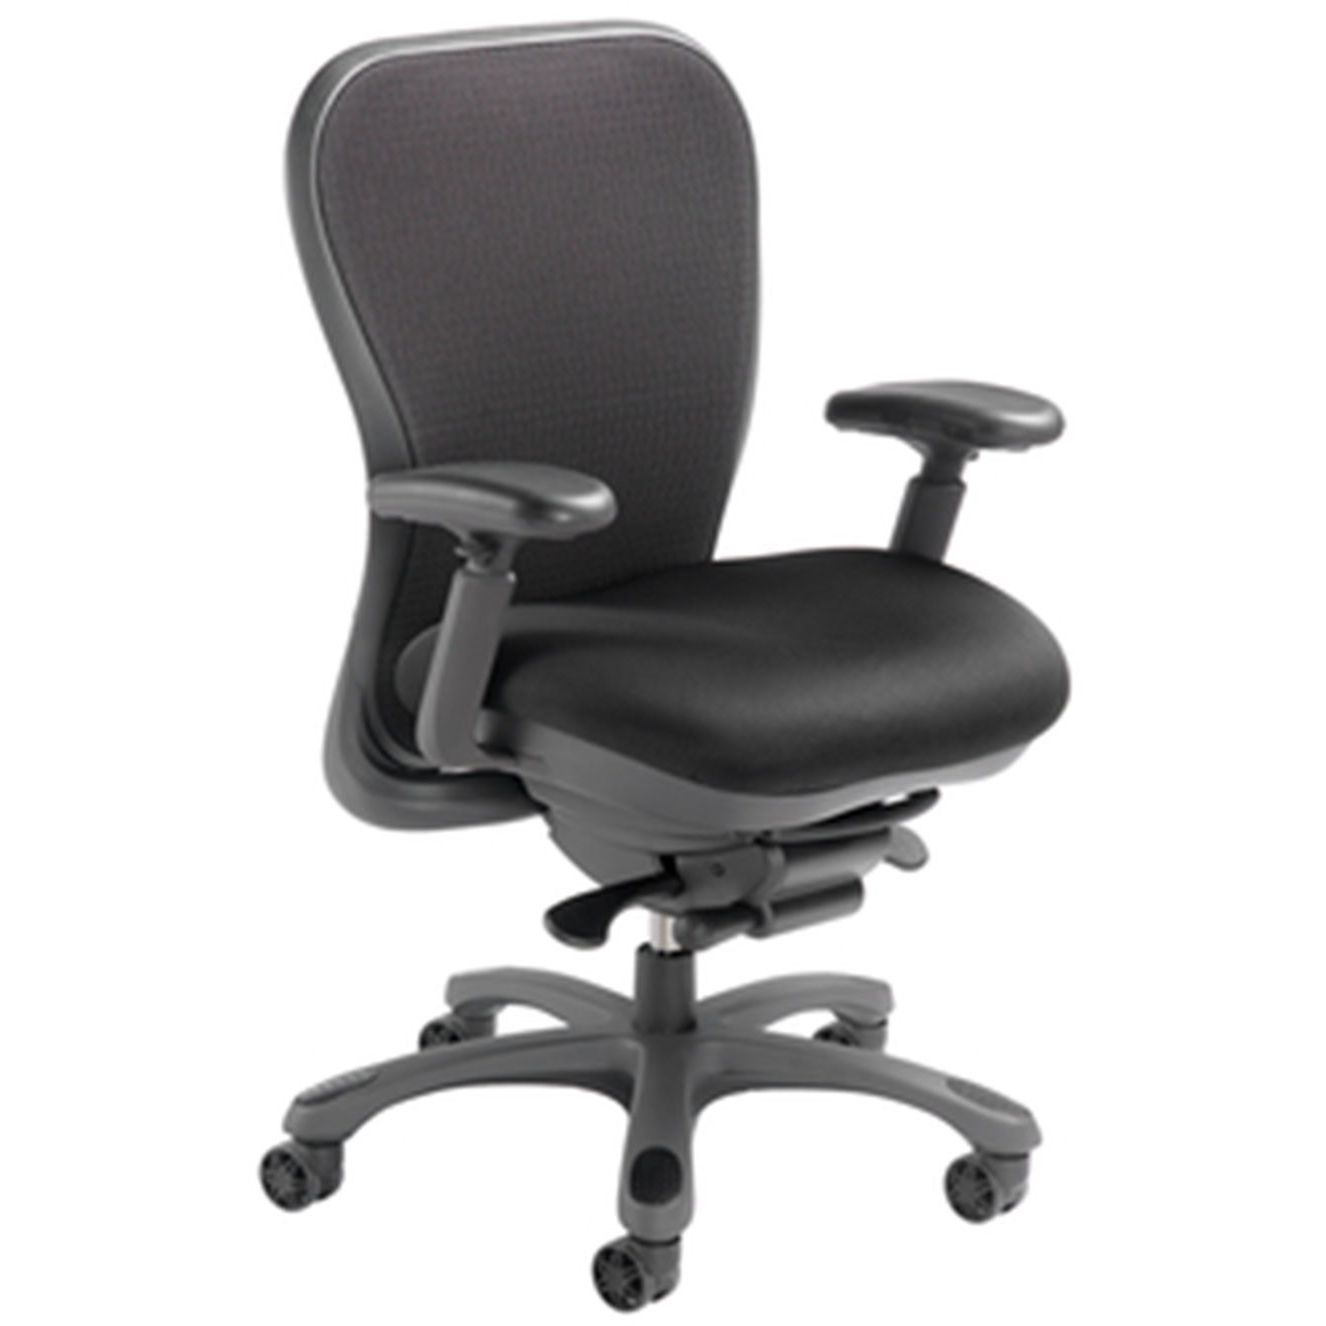 Cxo Mid Back Executive Ergonomic Chair